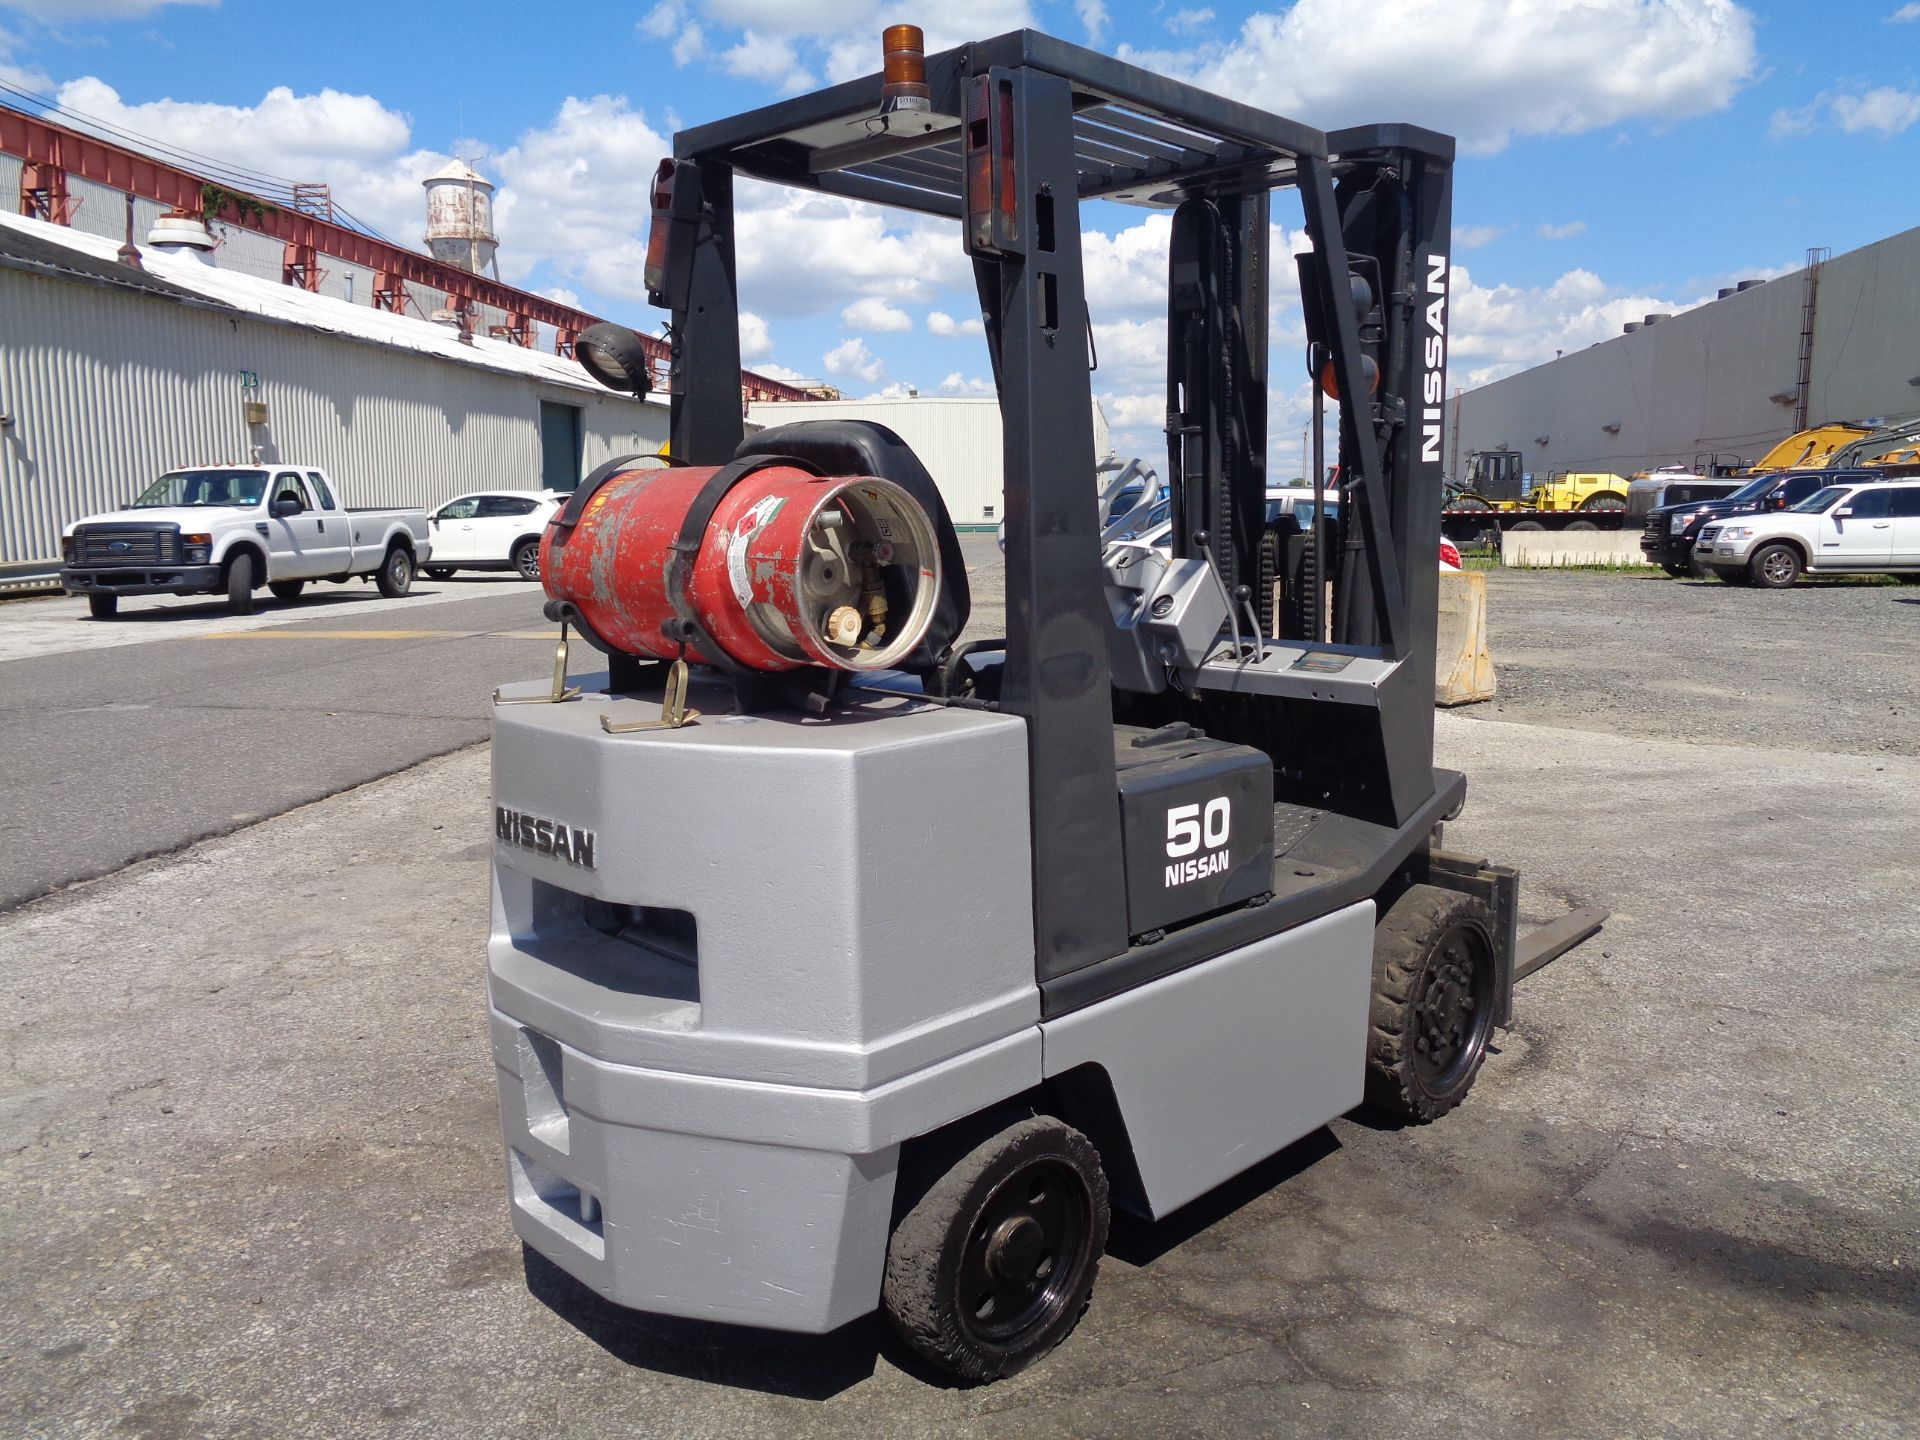 Nissan KCPH02A25PV 4,400 lb Forklift - Image 7 of 17